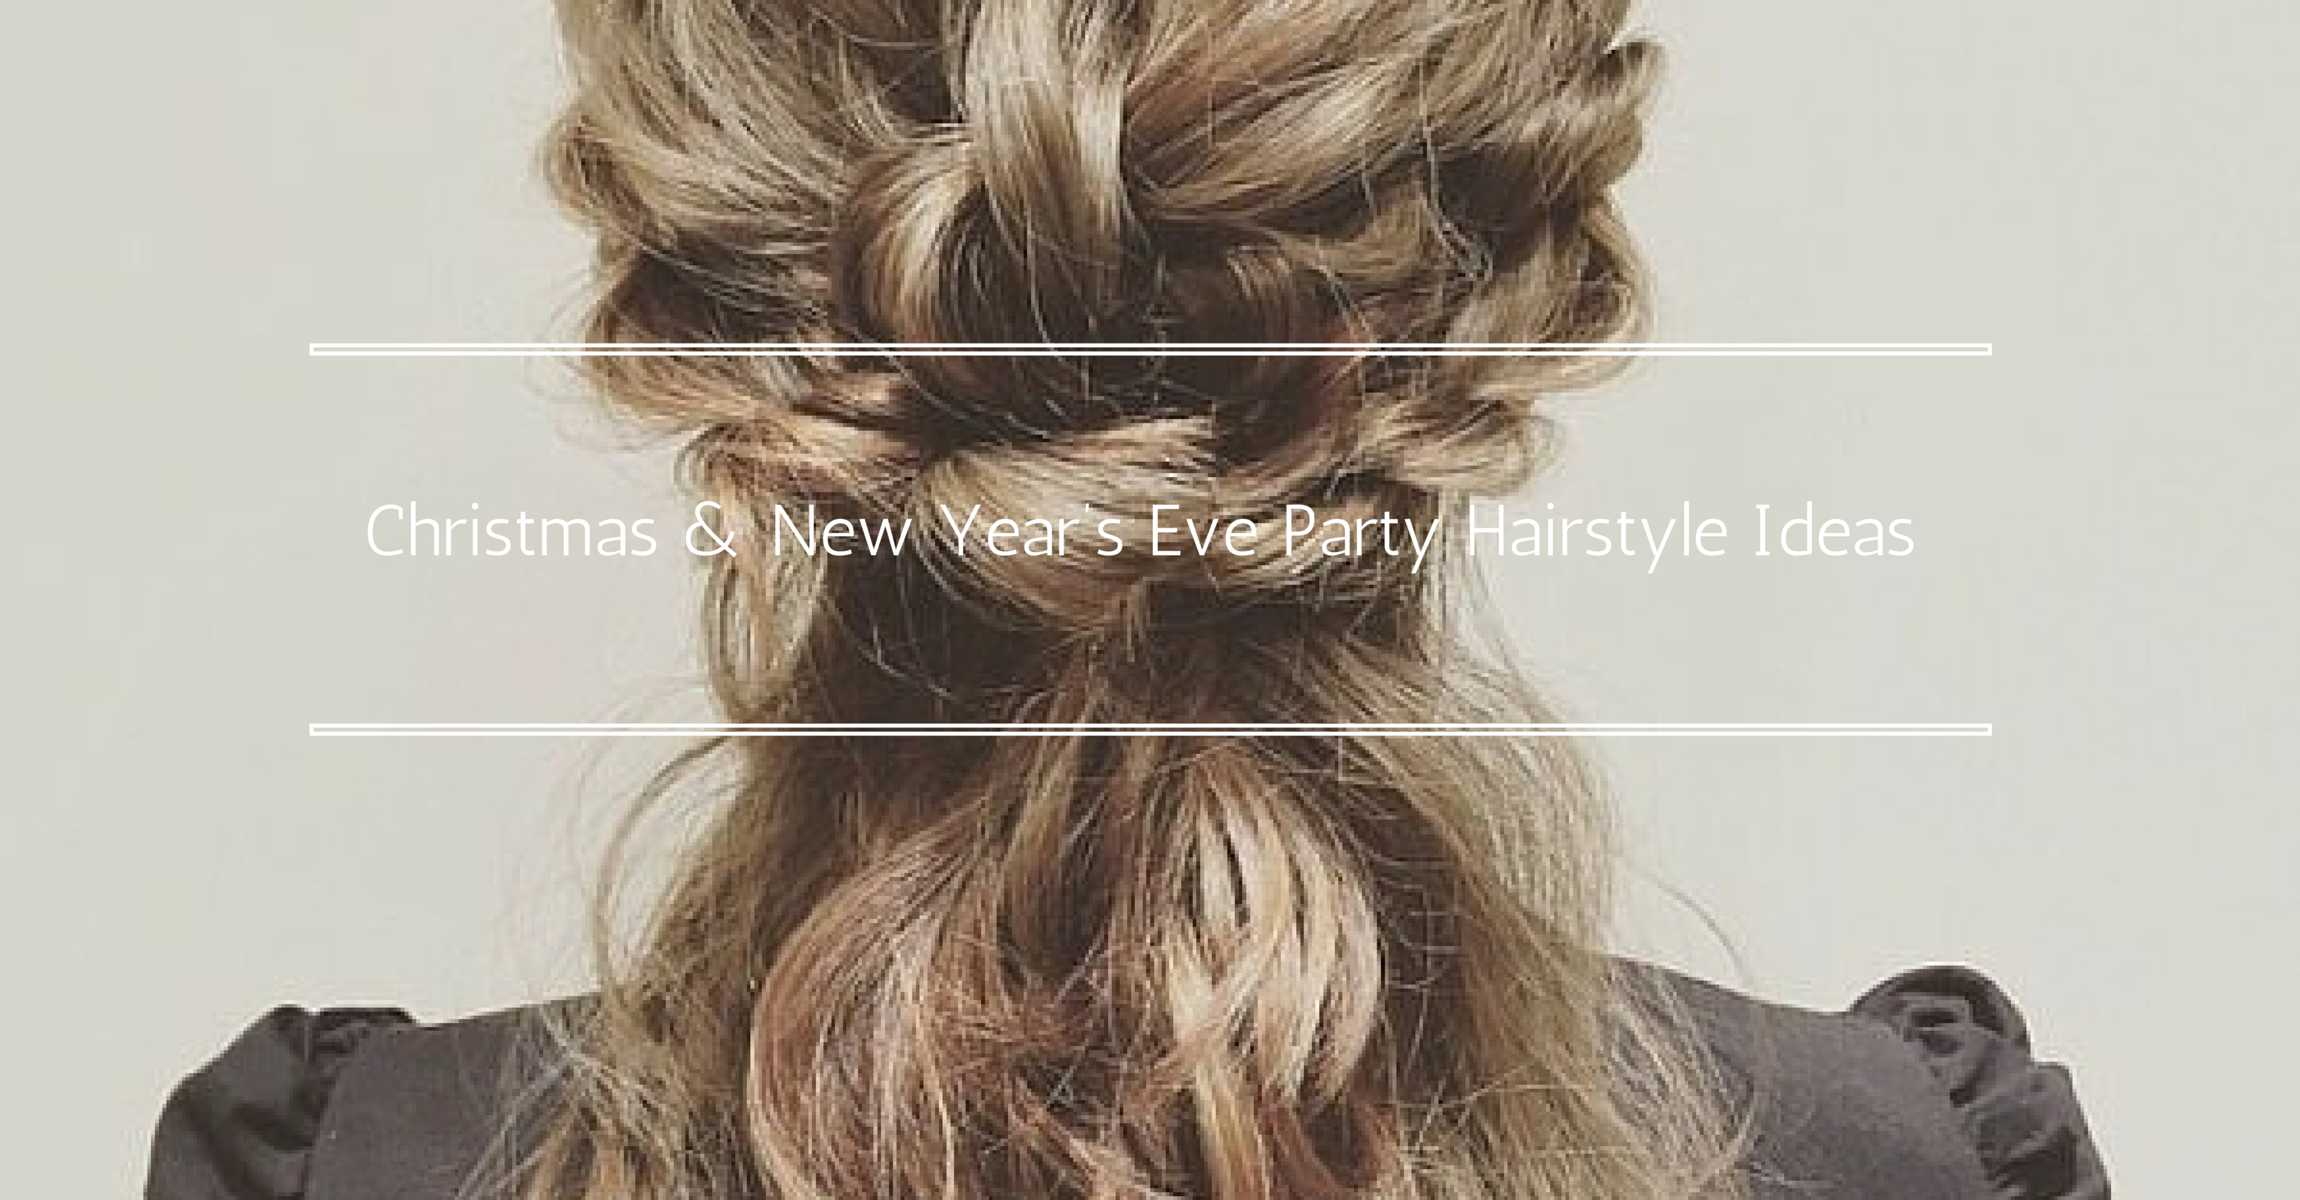 Top Christmas And New Years Eve Party Hairstyle Ideas For 2015 2016